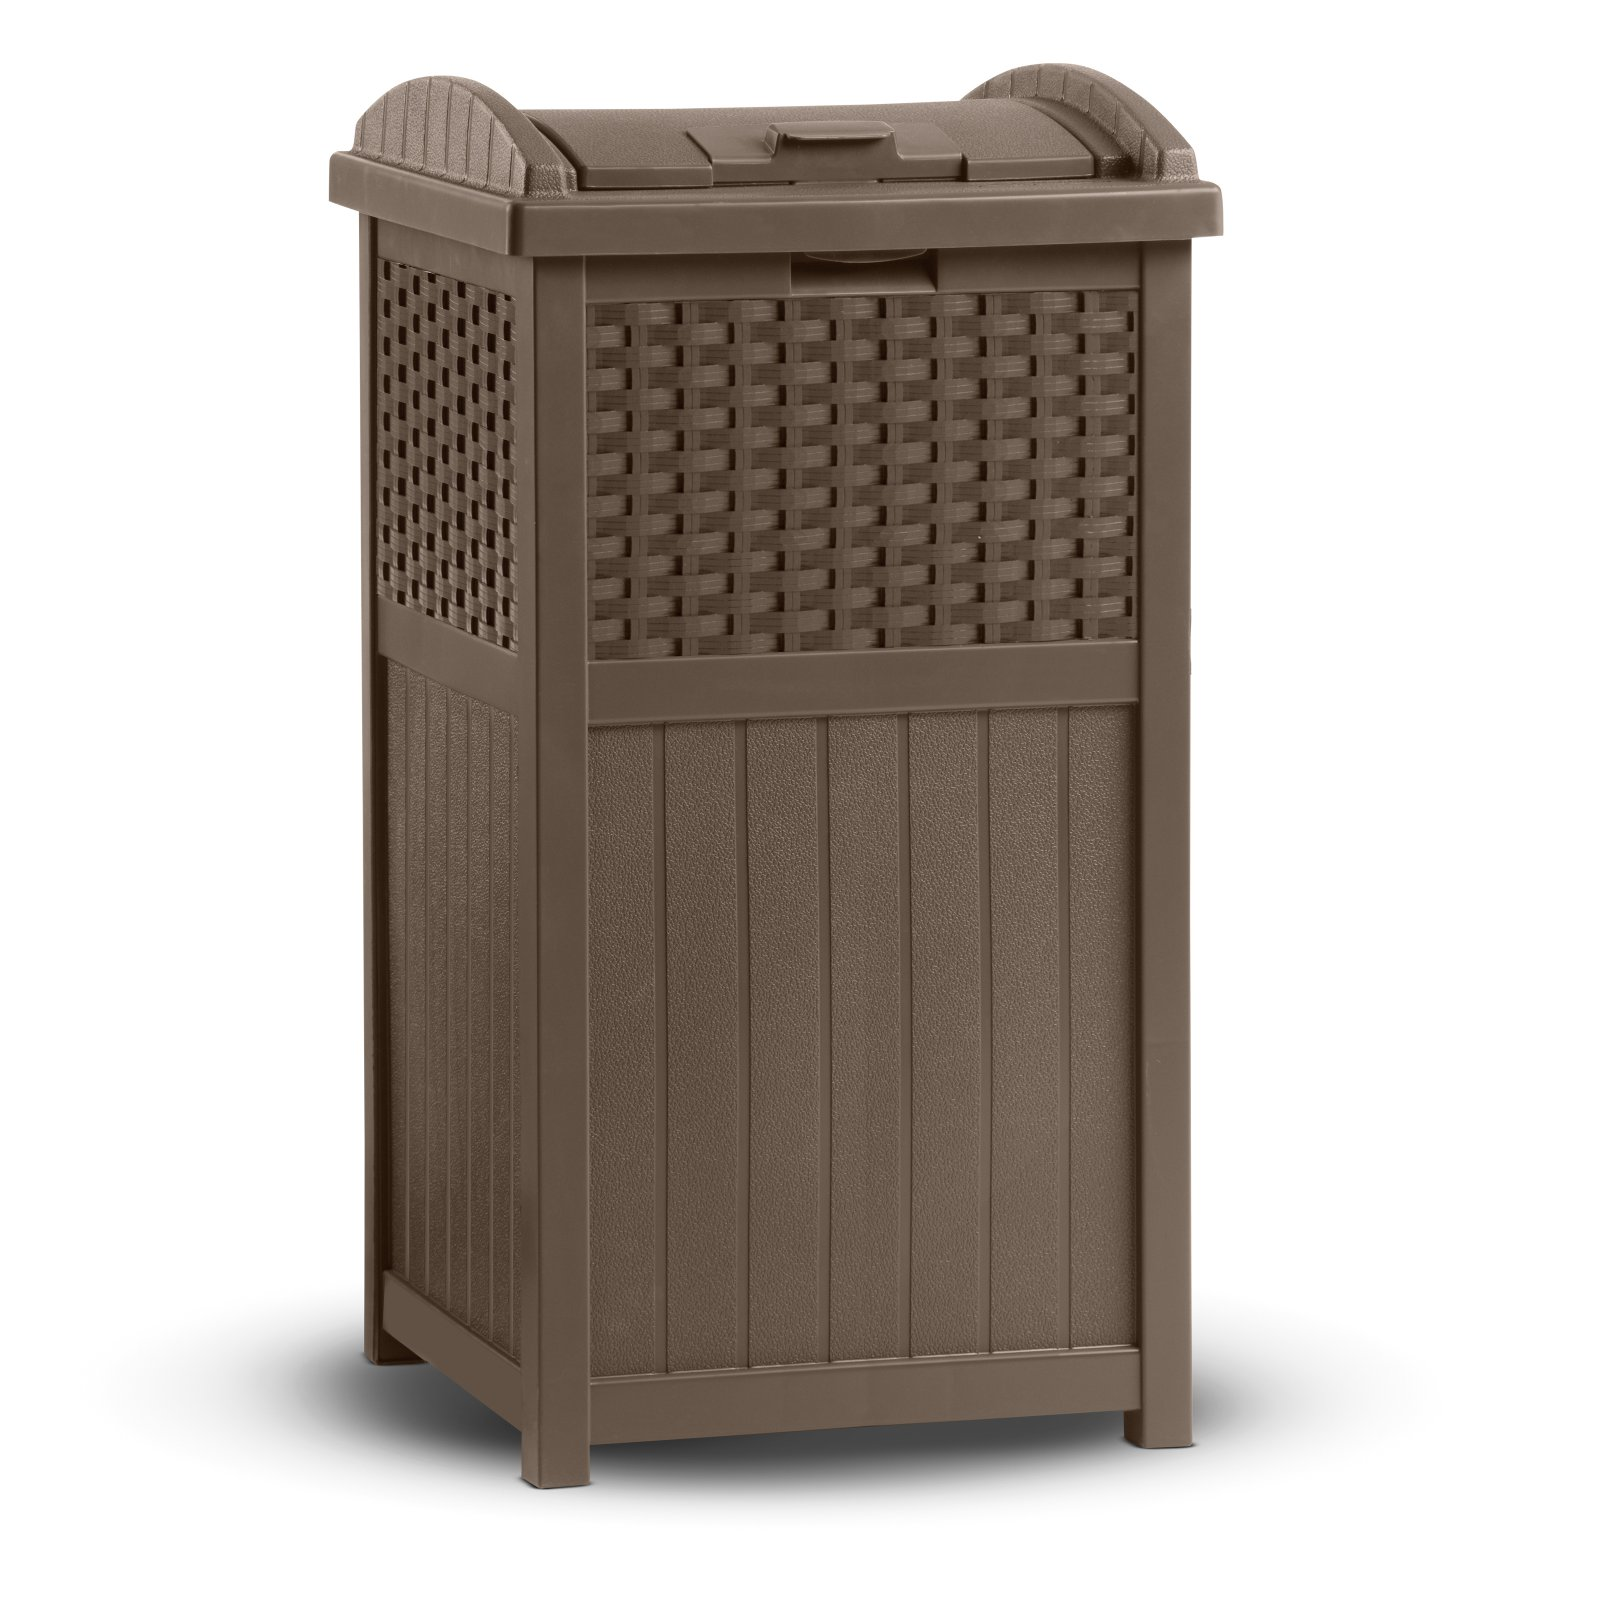 Suncast Outdoor Wicker Trash Hideaway